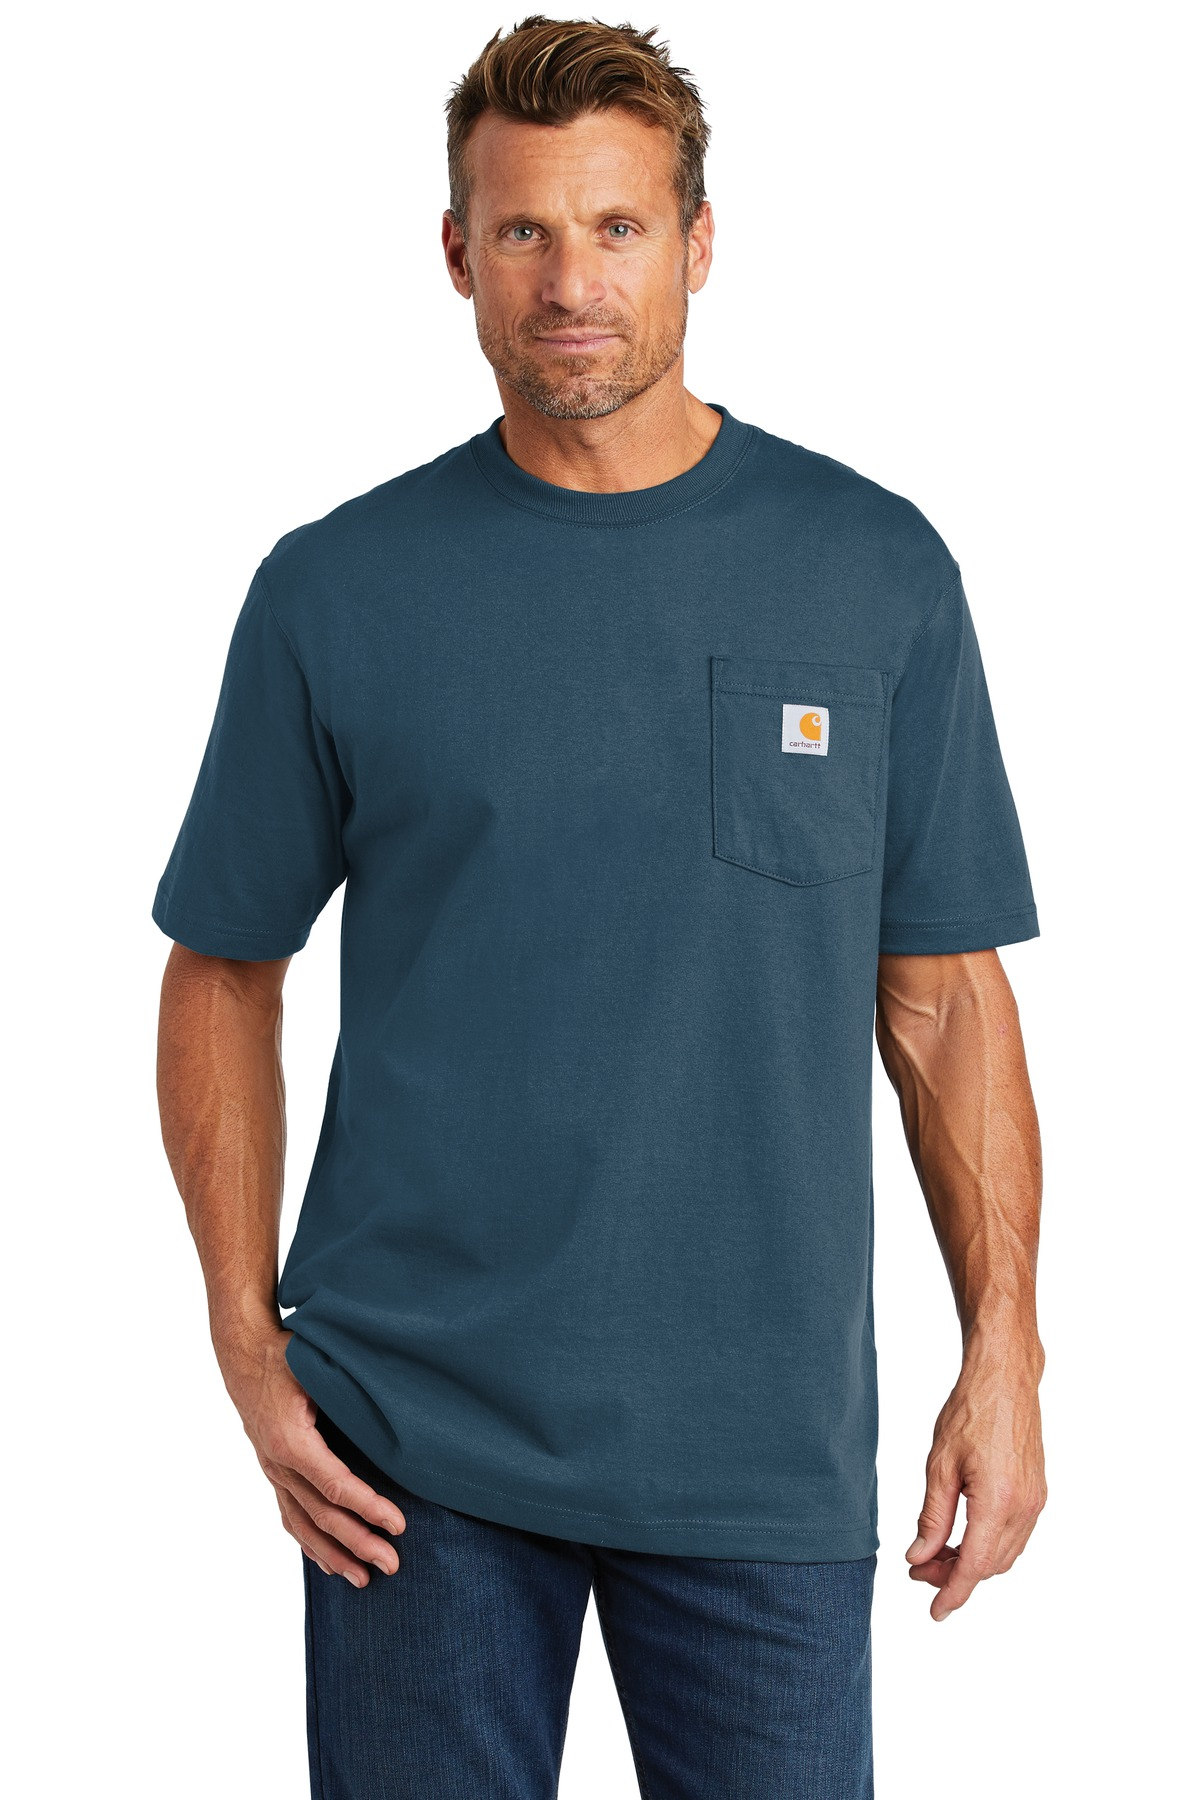 Carhartt  ®  Workwear Pocket Short Sleeve T-Shirt. CTK87 - Stream Blue